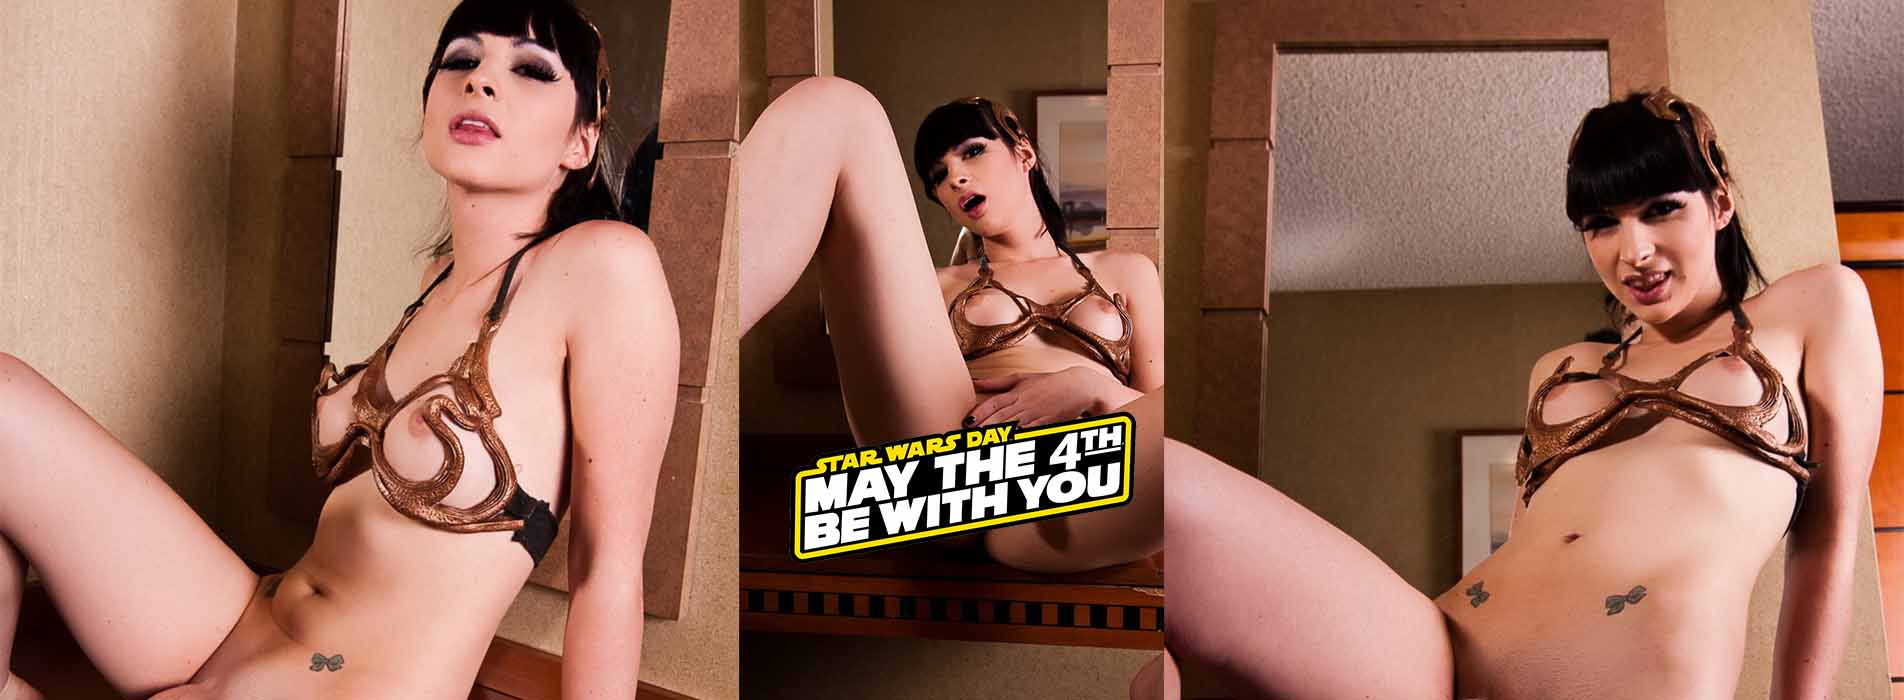 TS Bailey Jay StarWars